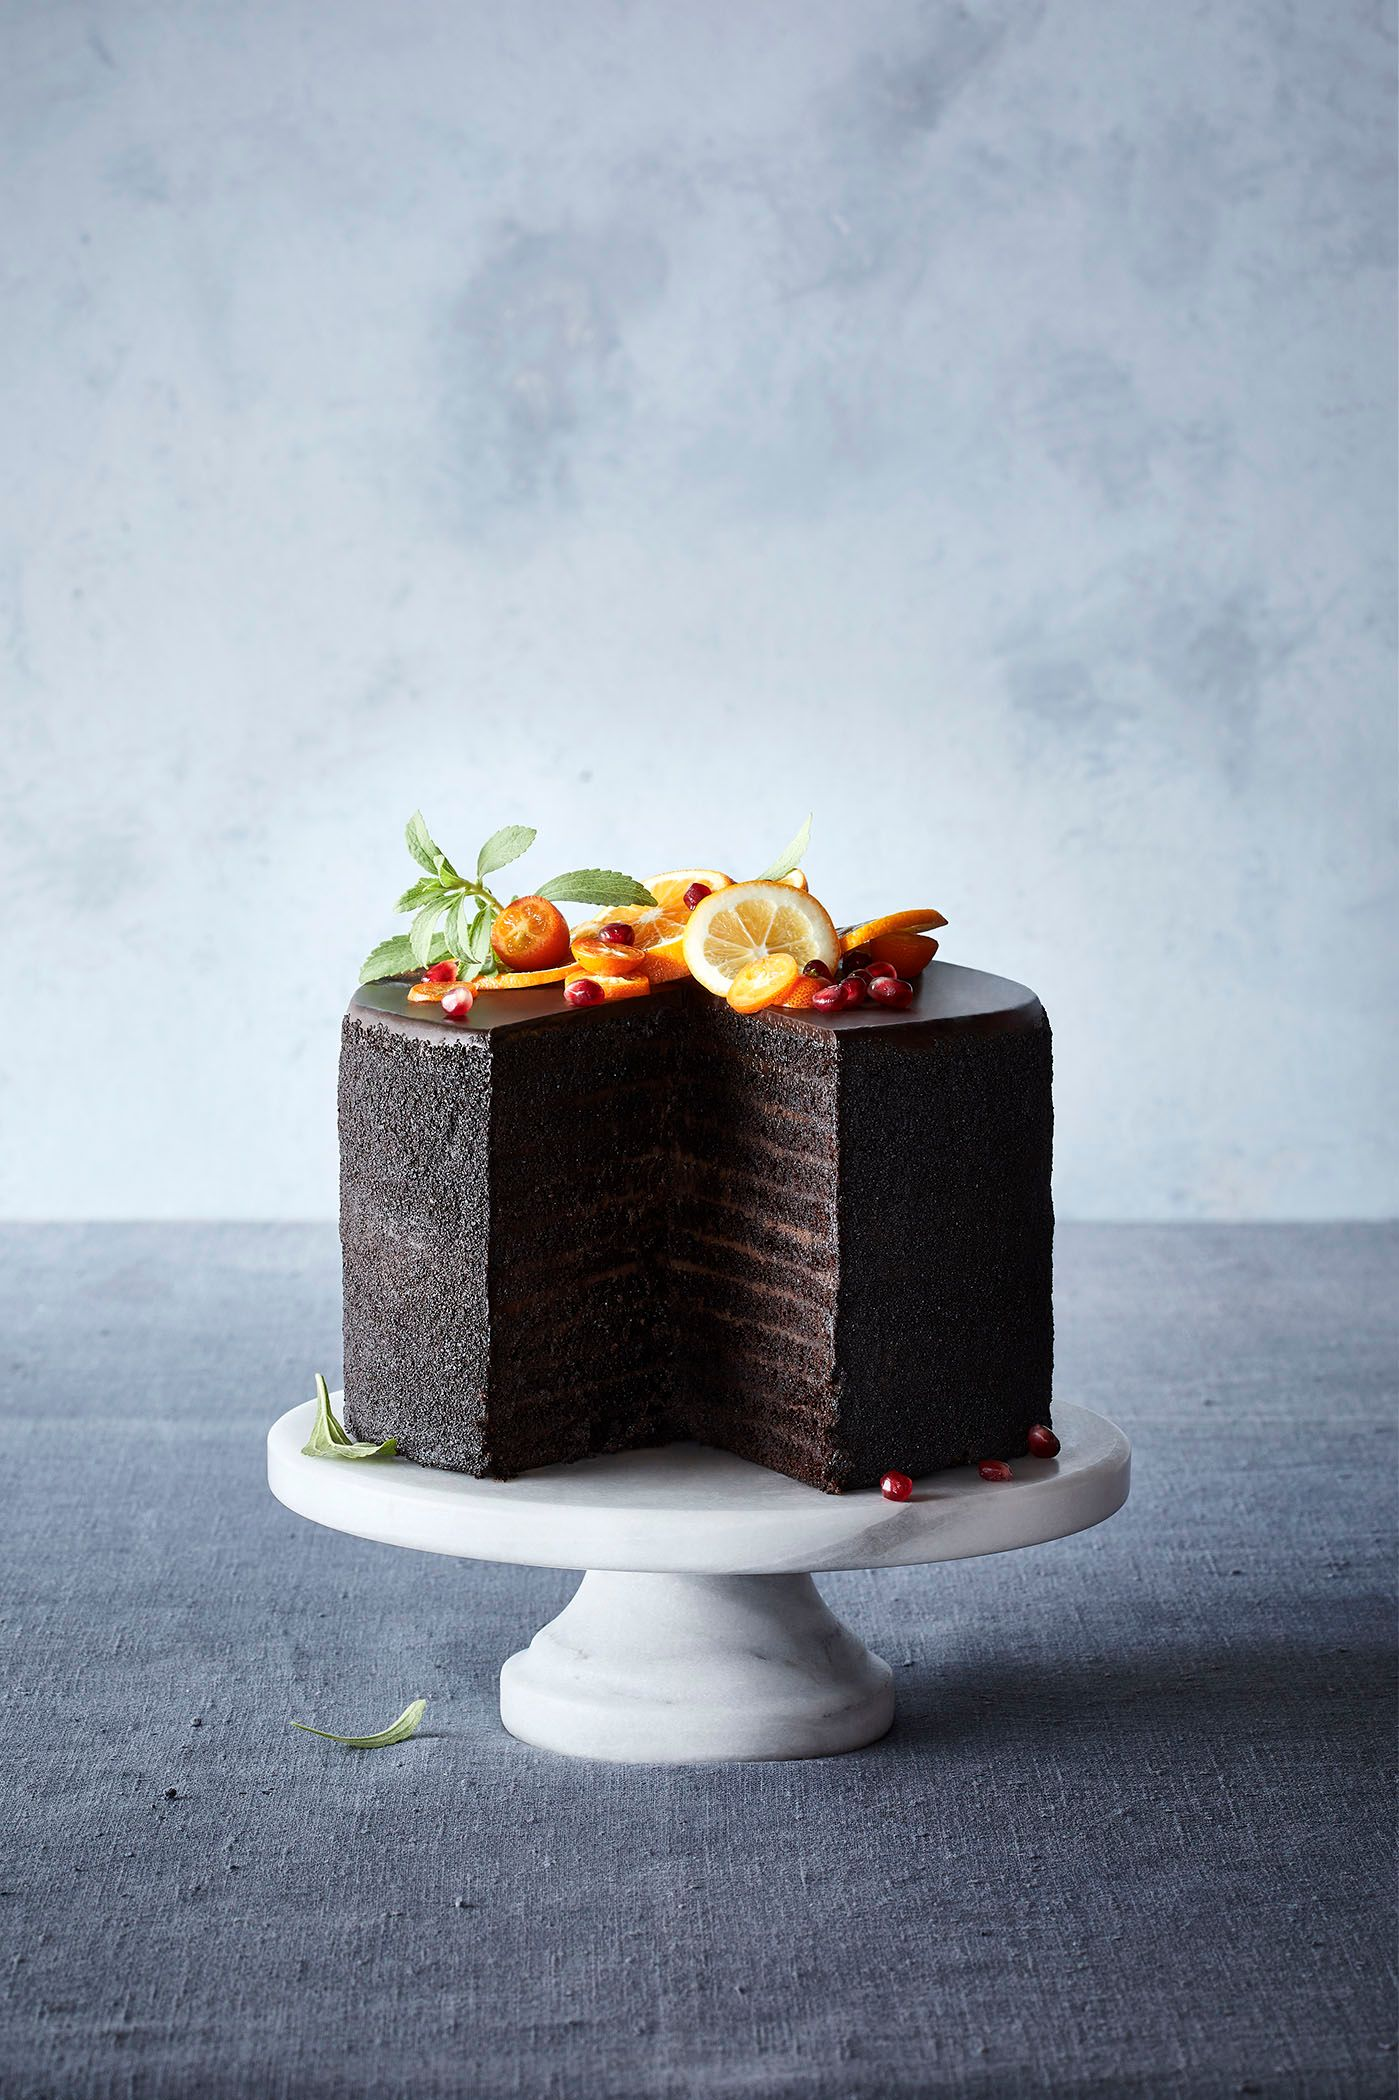 COVERTRY_STRIPHOUSESTEAK_LAYERCHOCOCAKE_Q3828_PB_HB19.jpg